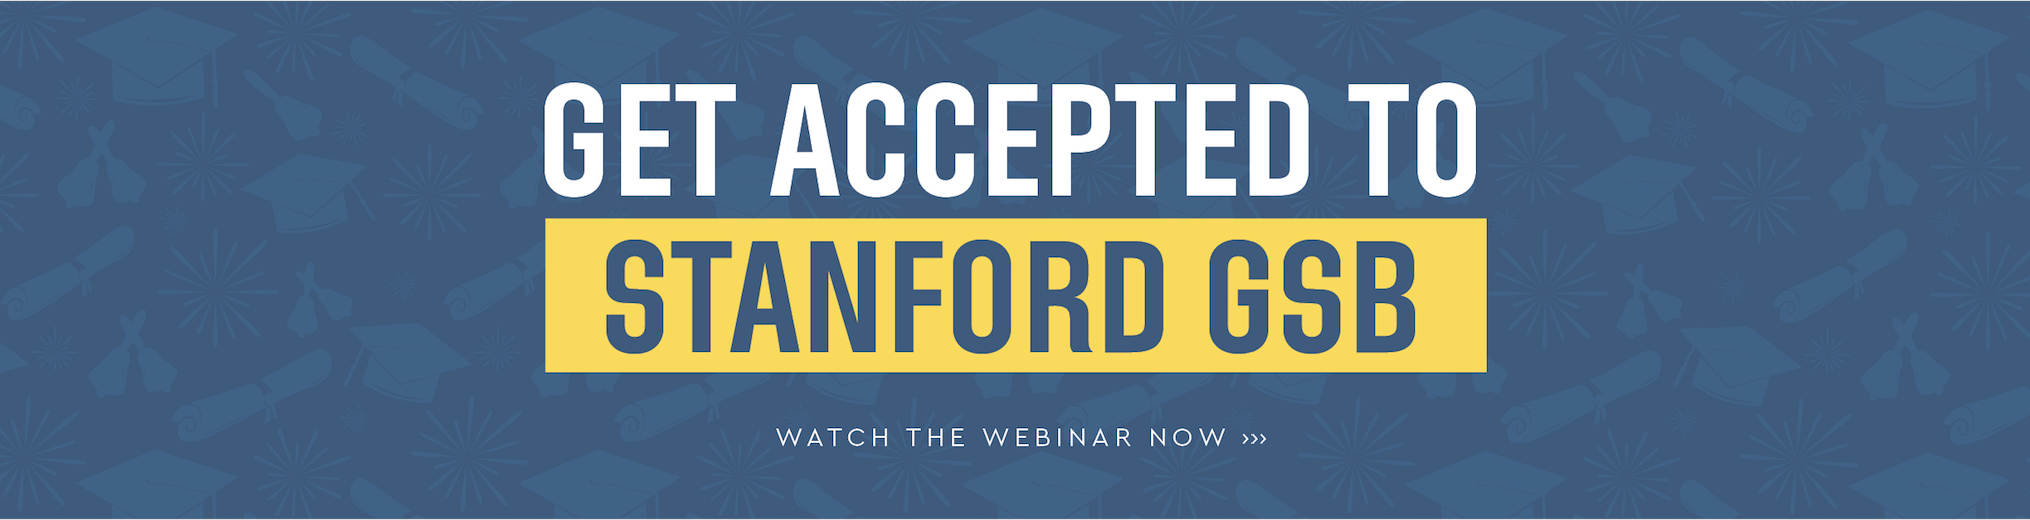 Free webinar: Get Accepted to Stanford GSB! << Click here to watch >>